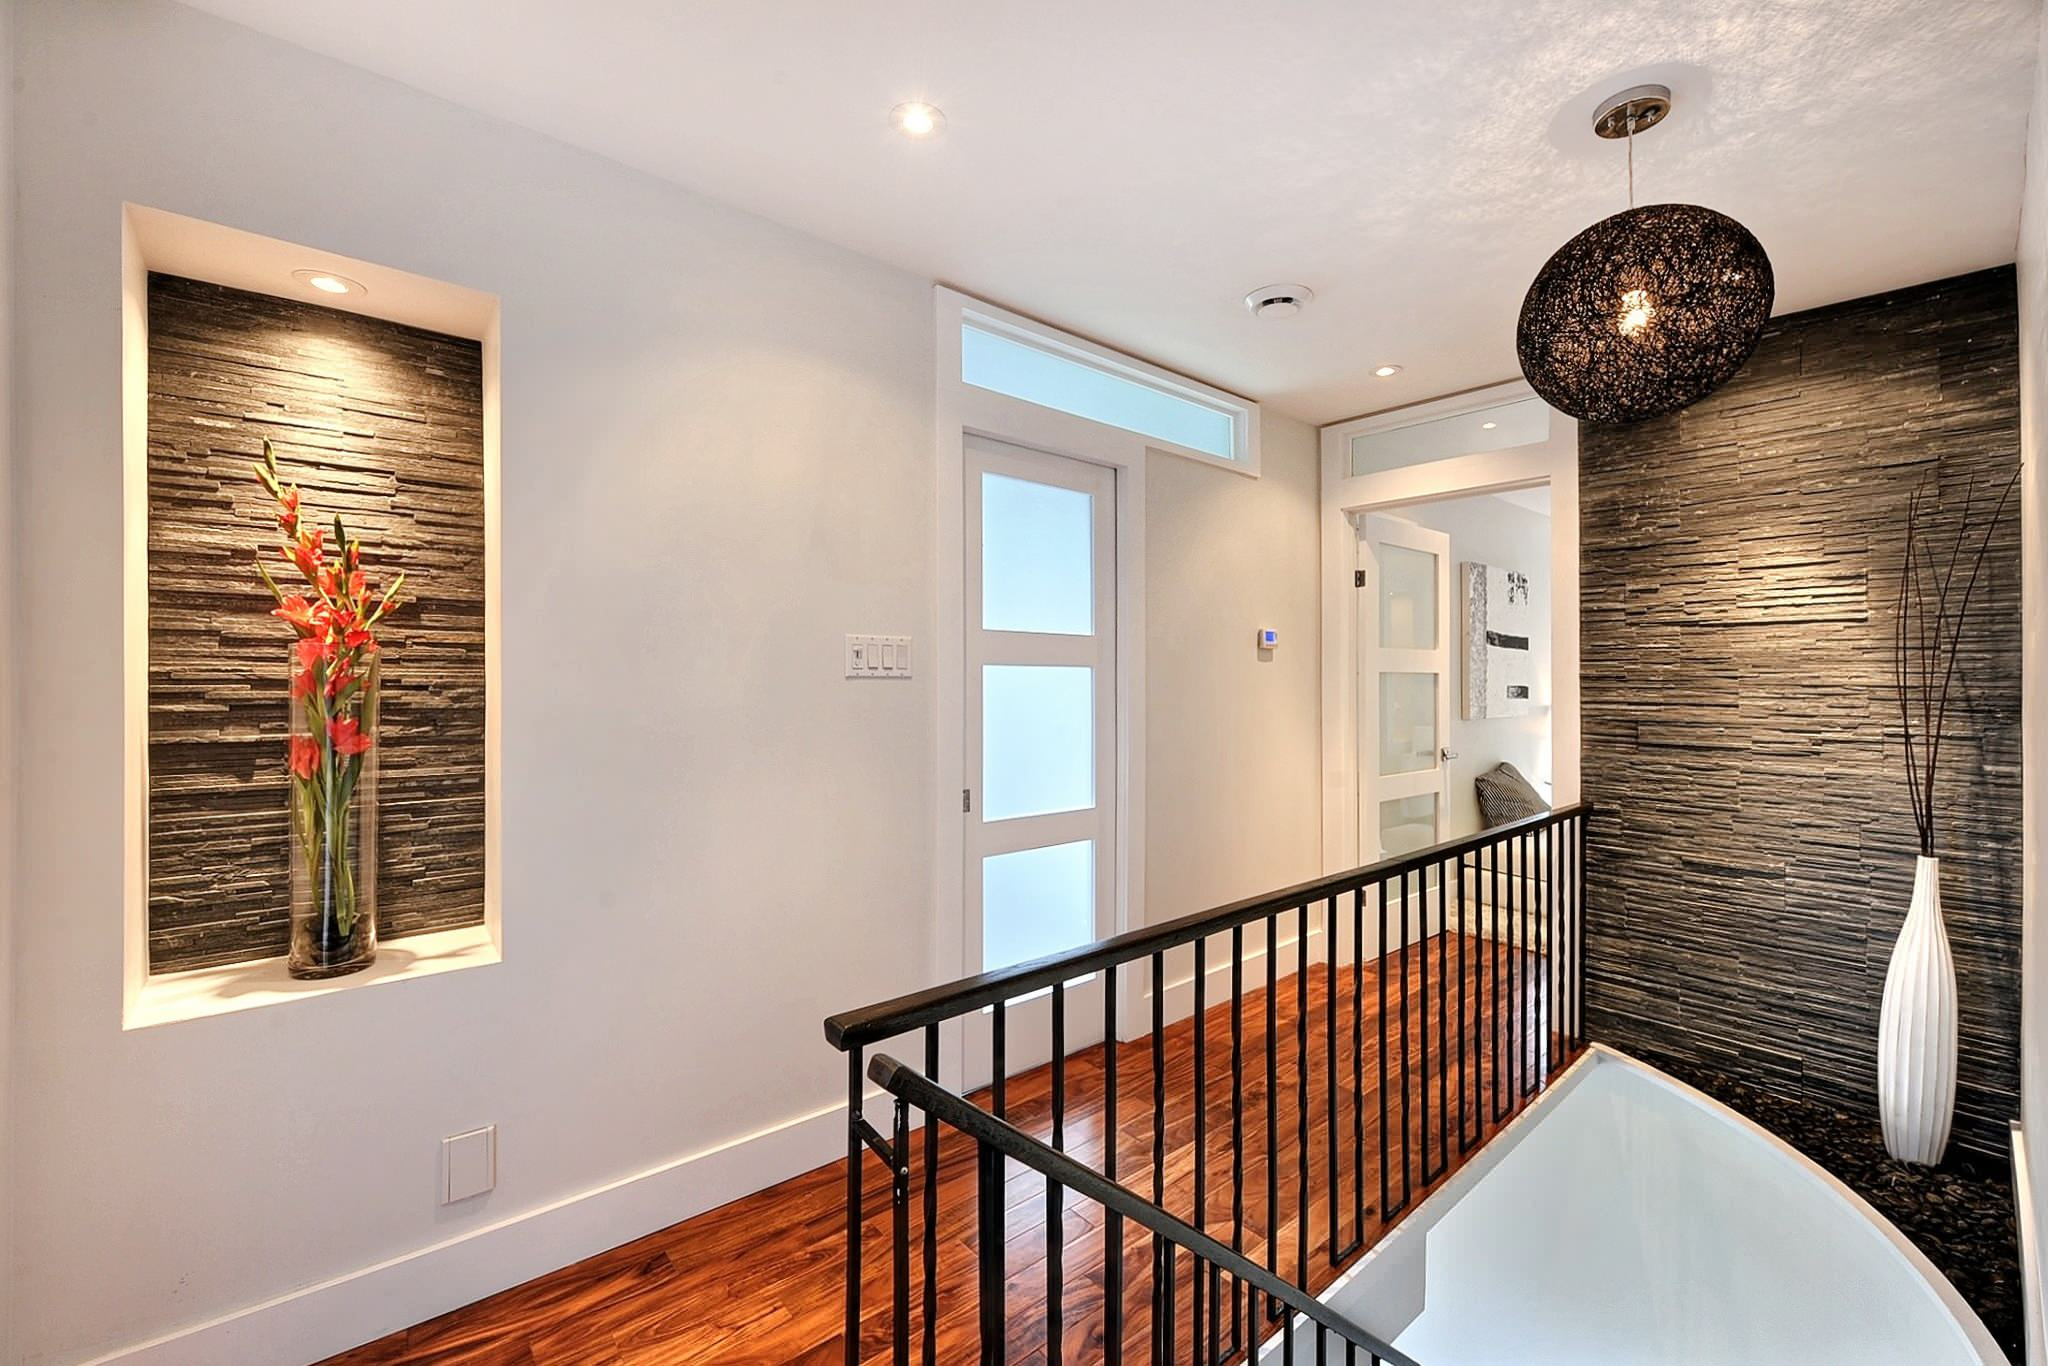 Inspiring Home Interior Using Modern Interior Doors: Inspiring Curved Wall And Gladiola Plus Large Vase Also Metal Spindles With Random Light And Staircase Also Stone Wall Plus Modern Interior Doors With Translucent Glass Door Also Transom